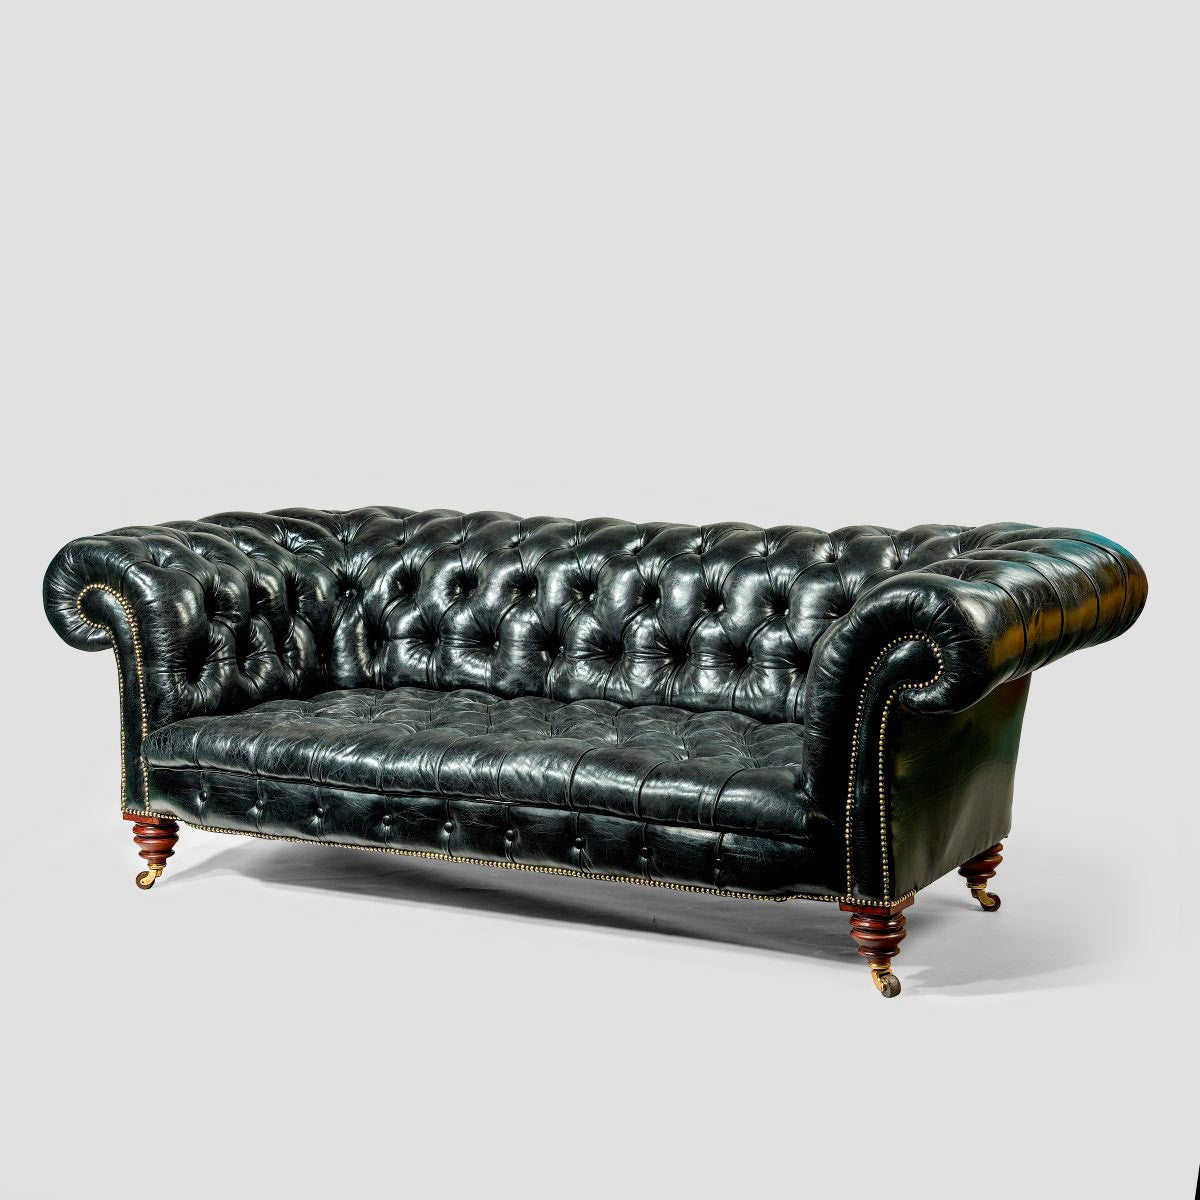 A pair of black leather chesterfield sofas by shoolbred at 1stdibs Leather chesterfield loveseat